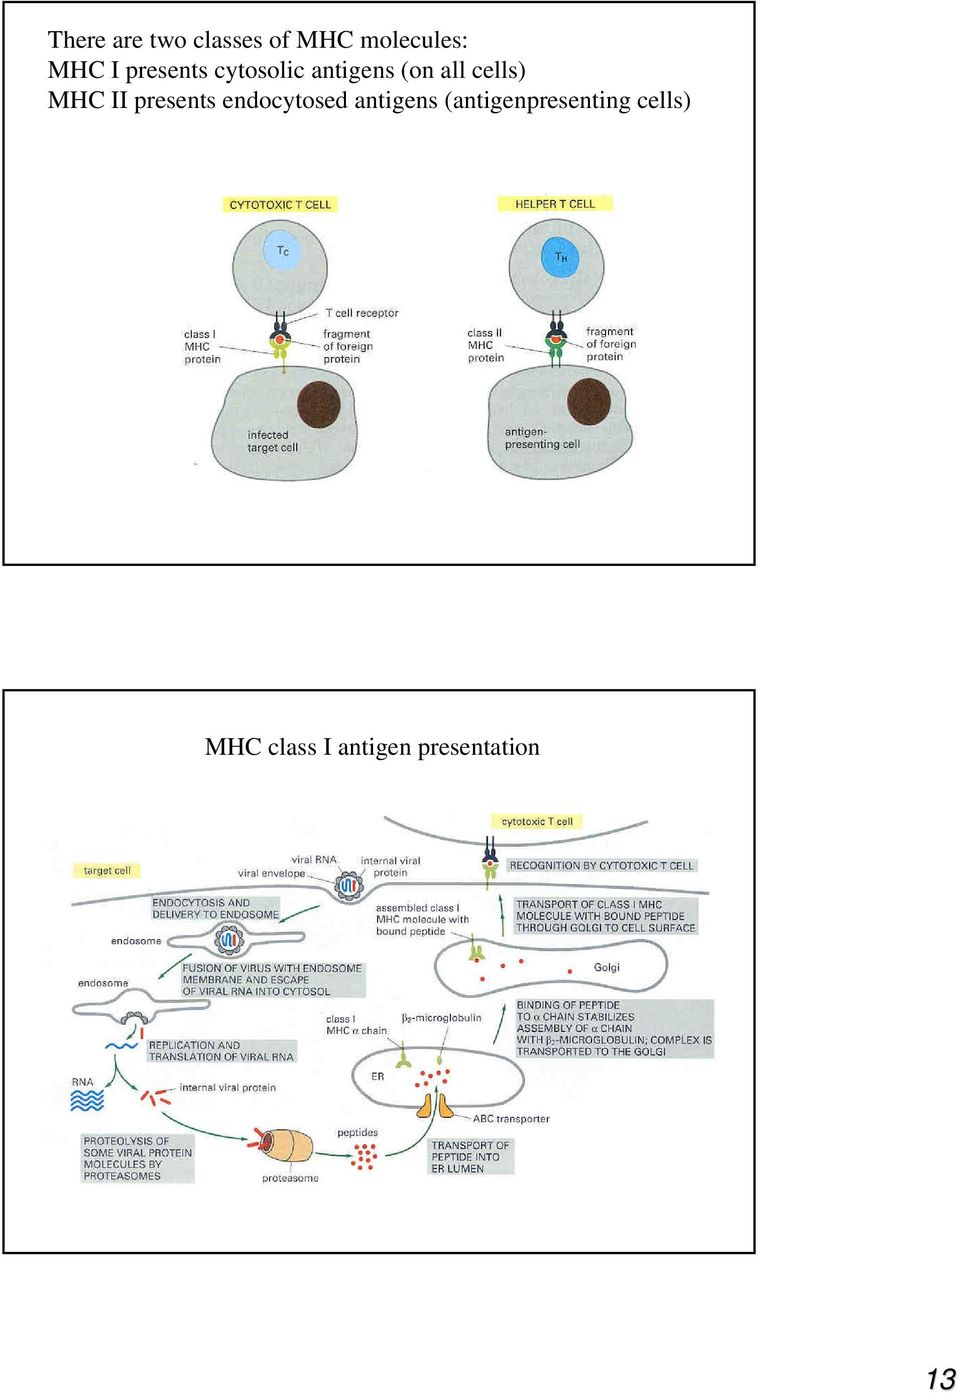 II presents endocytosed antigens